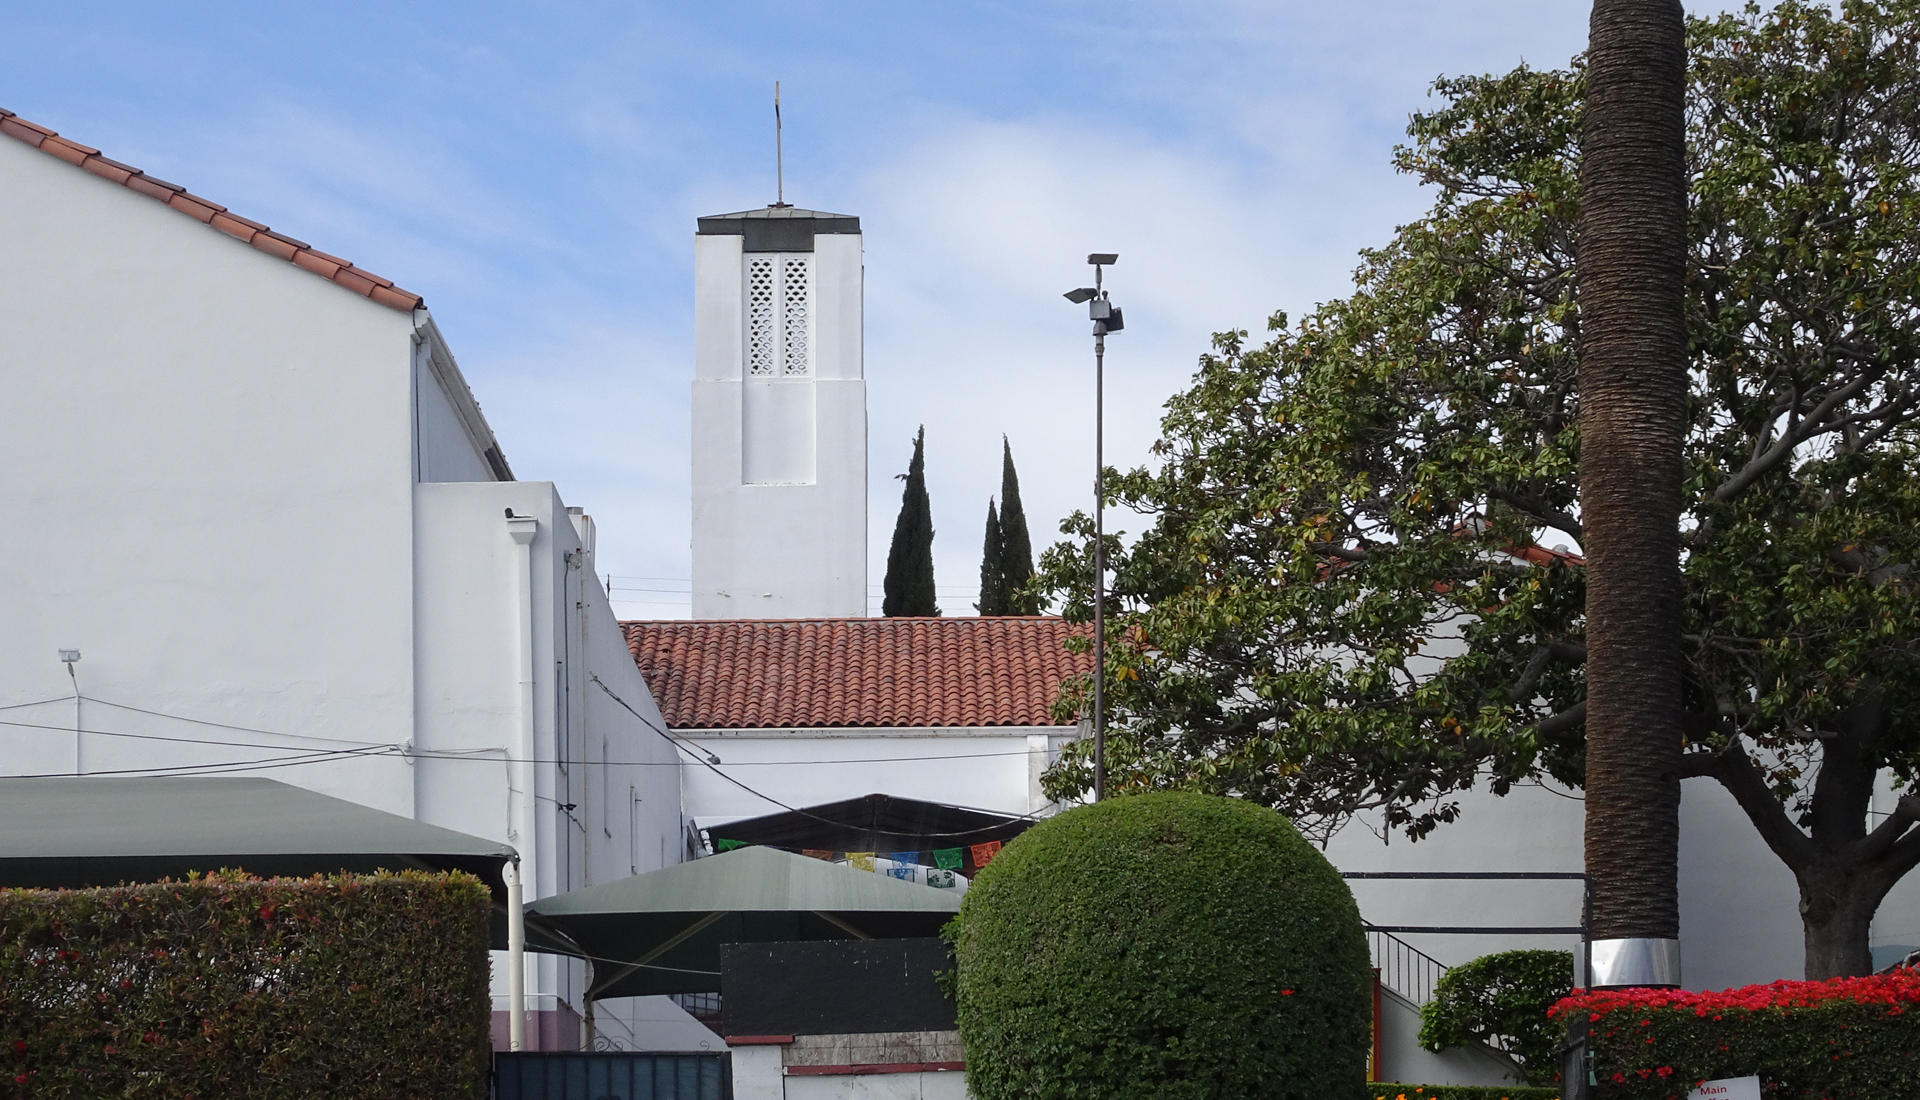 St. Stephen s Episcopal Church of Hollywood